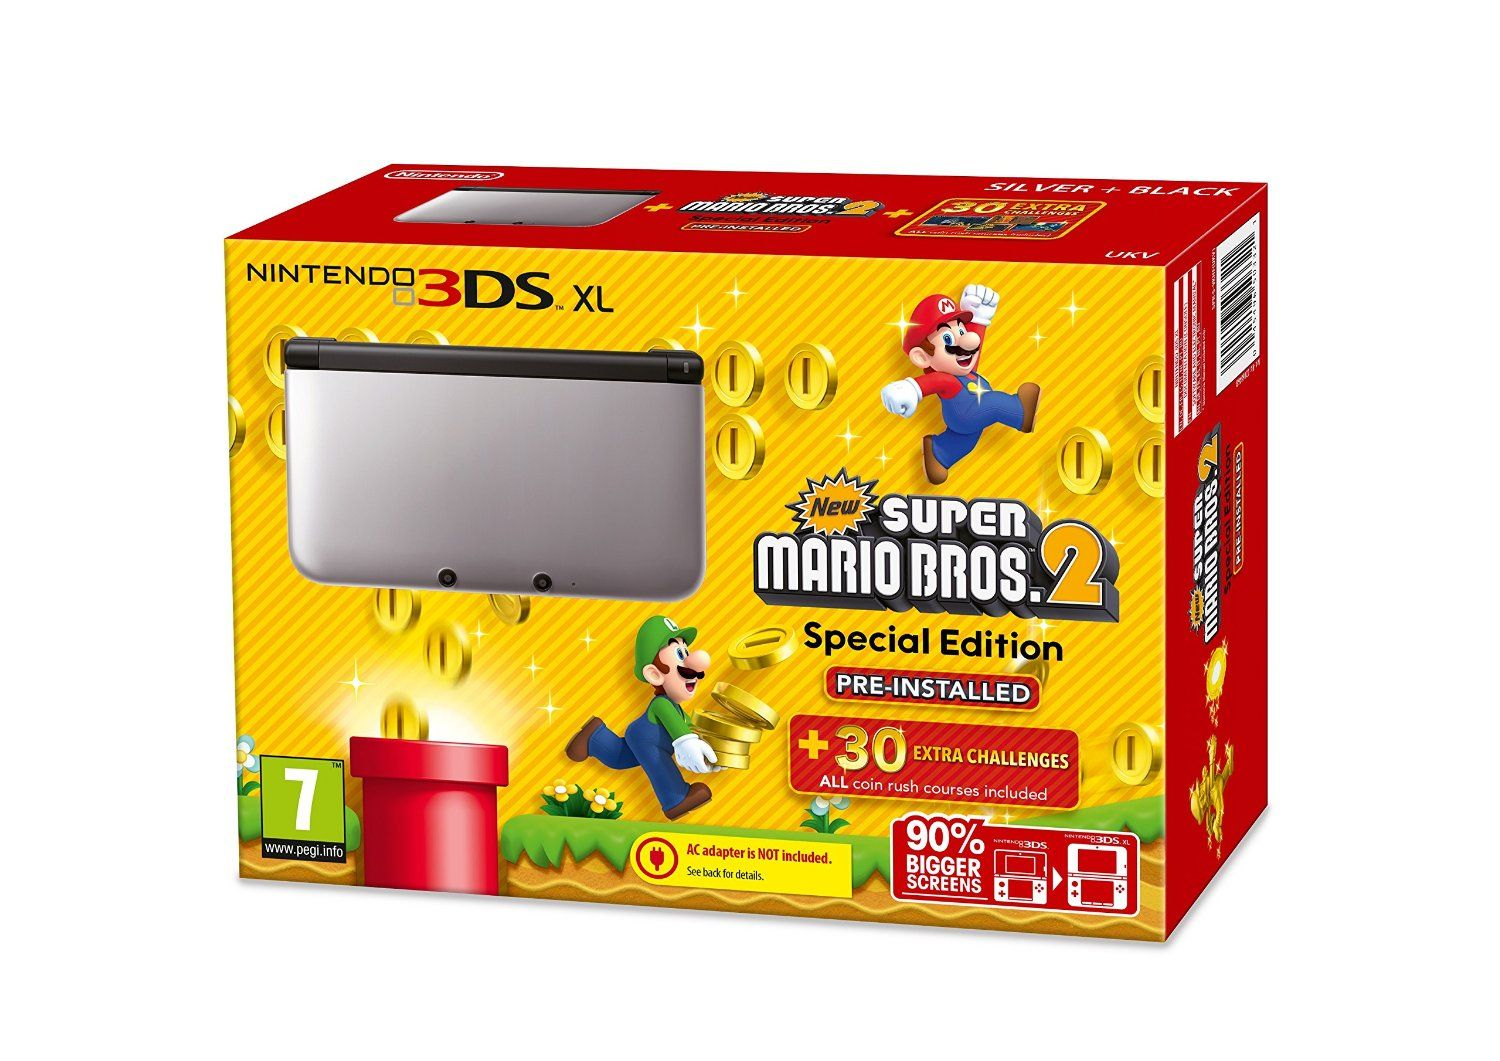 Nintendo Handheld Console 3ds Xl Silver And Black Limited